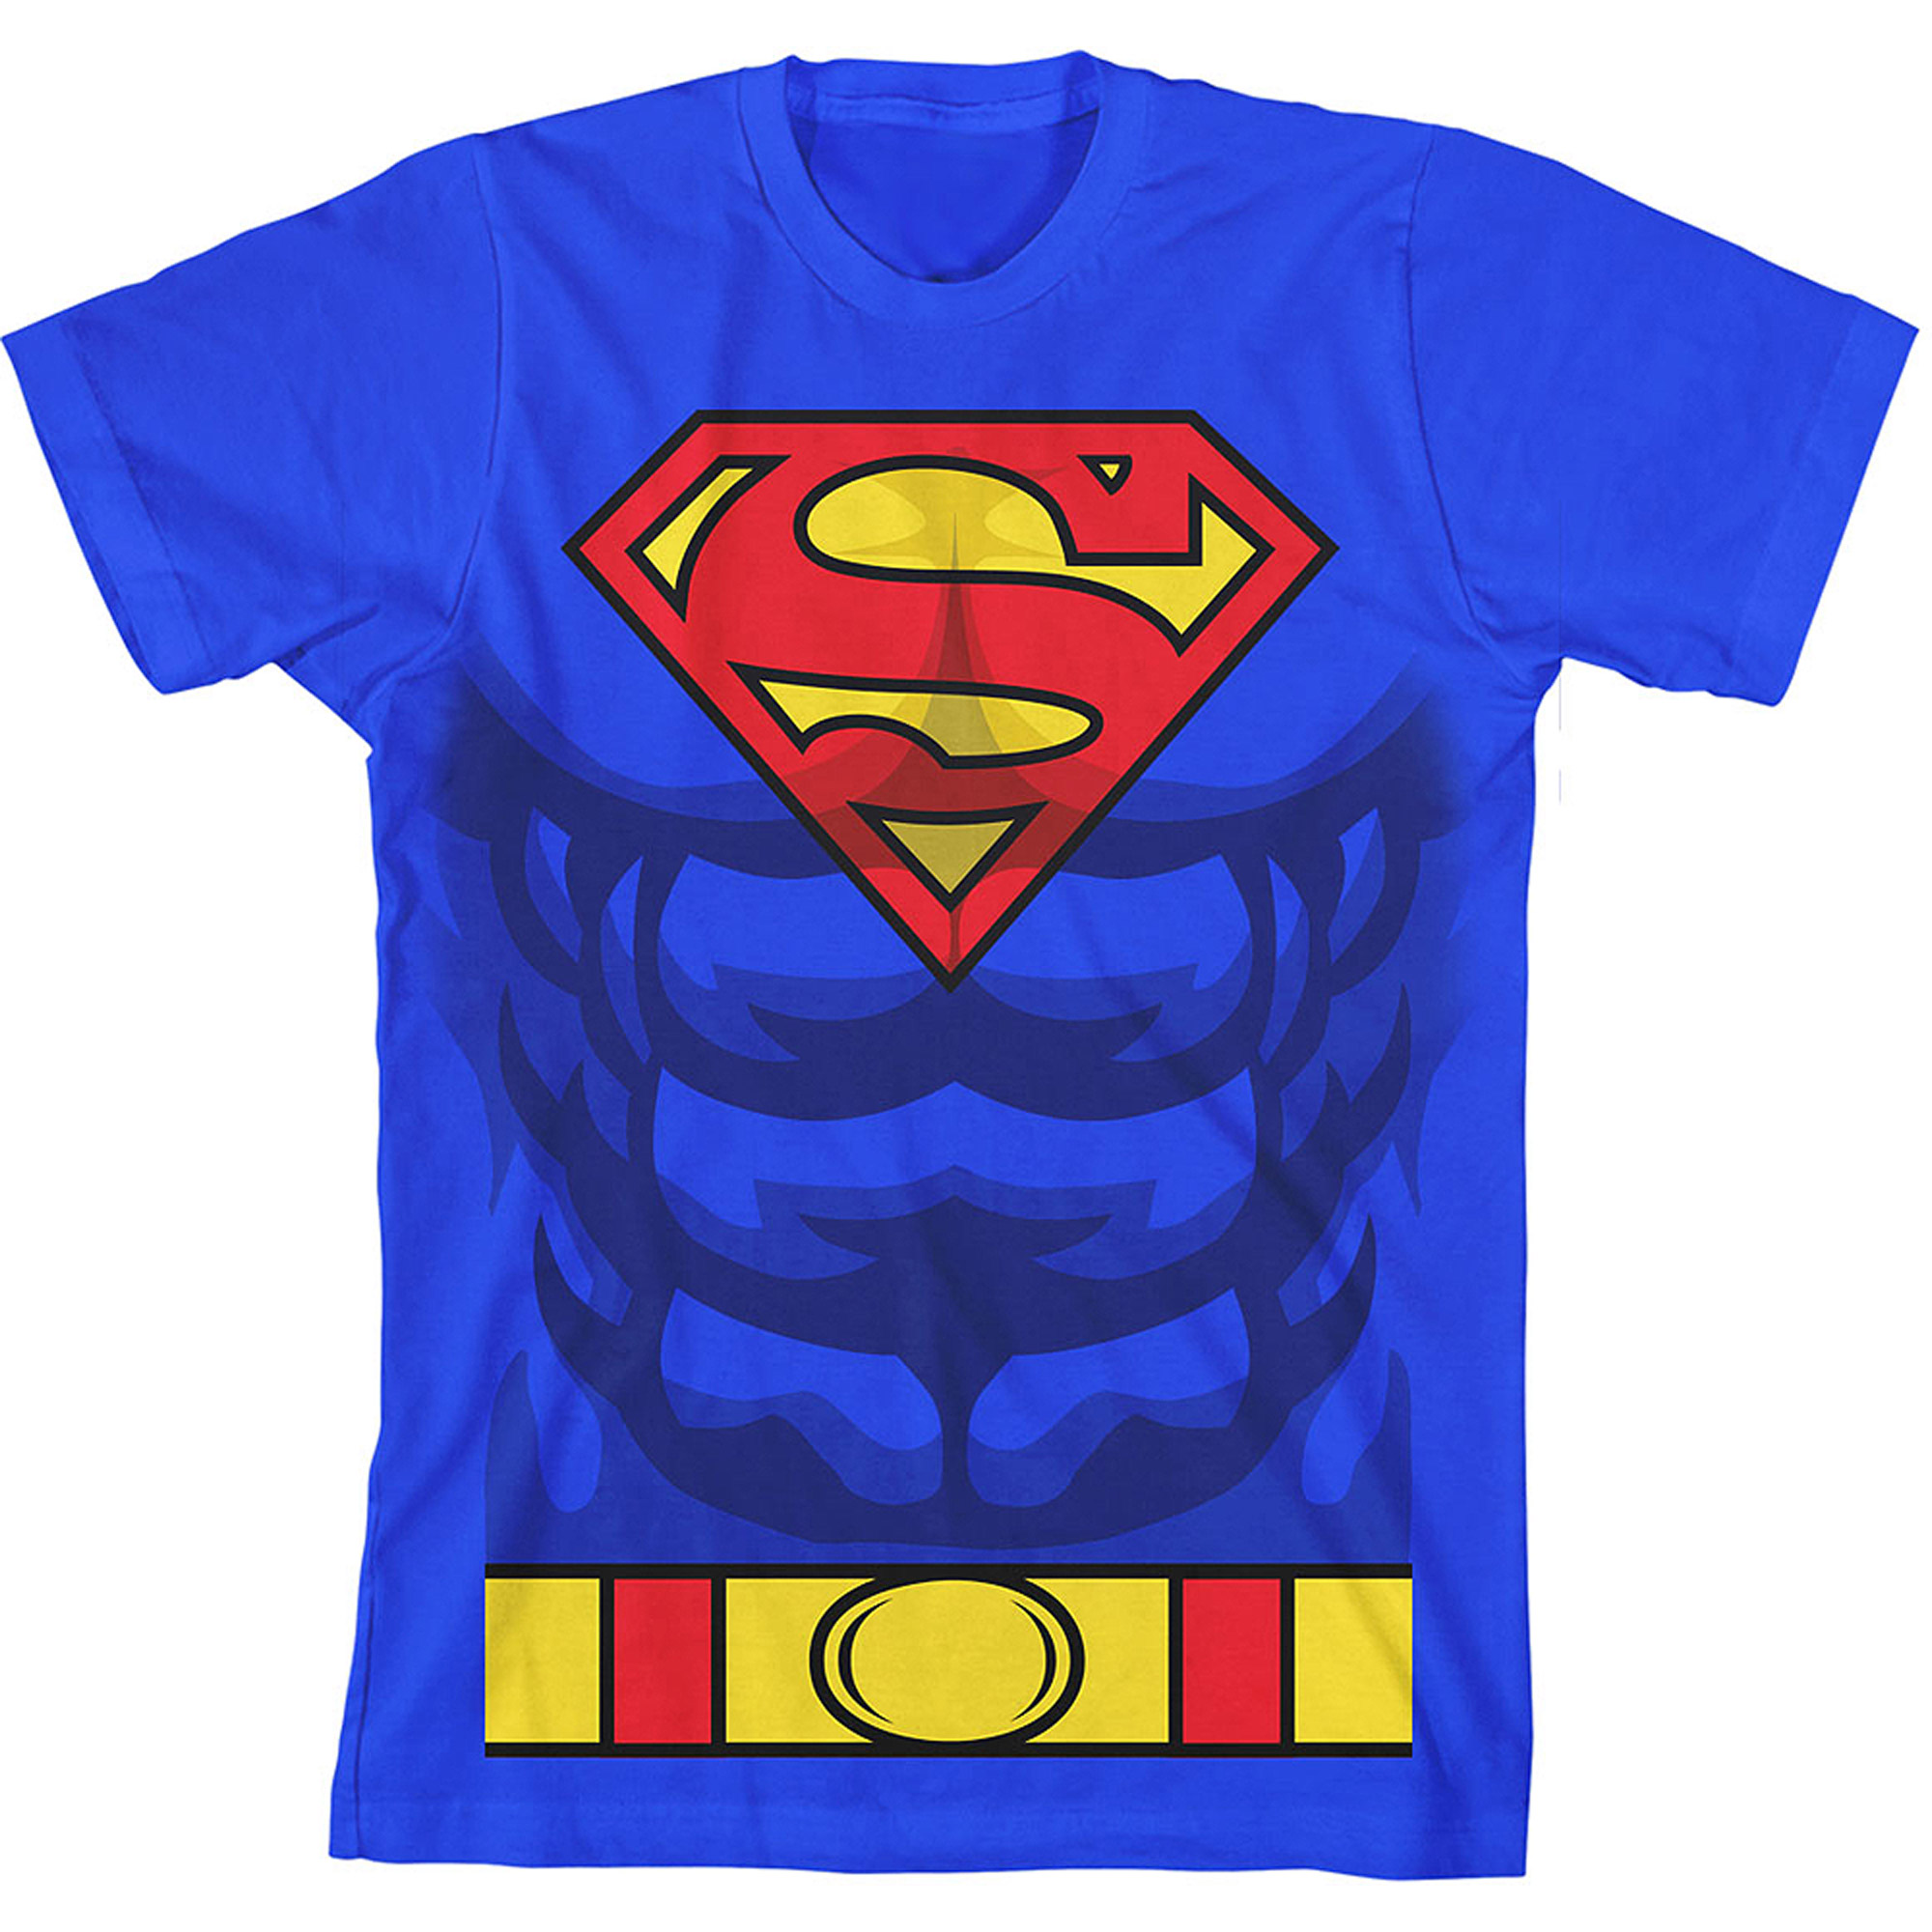 DC Comics Superman Costume Boys Graphic Tee